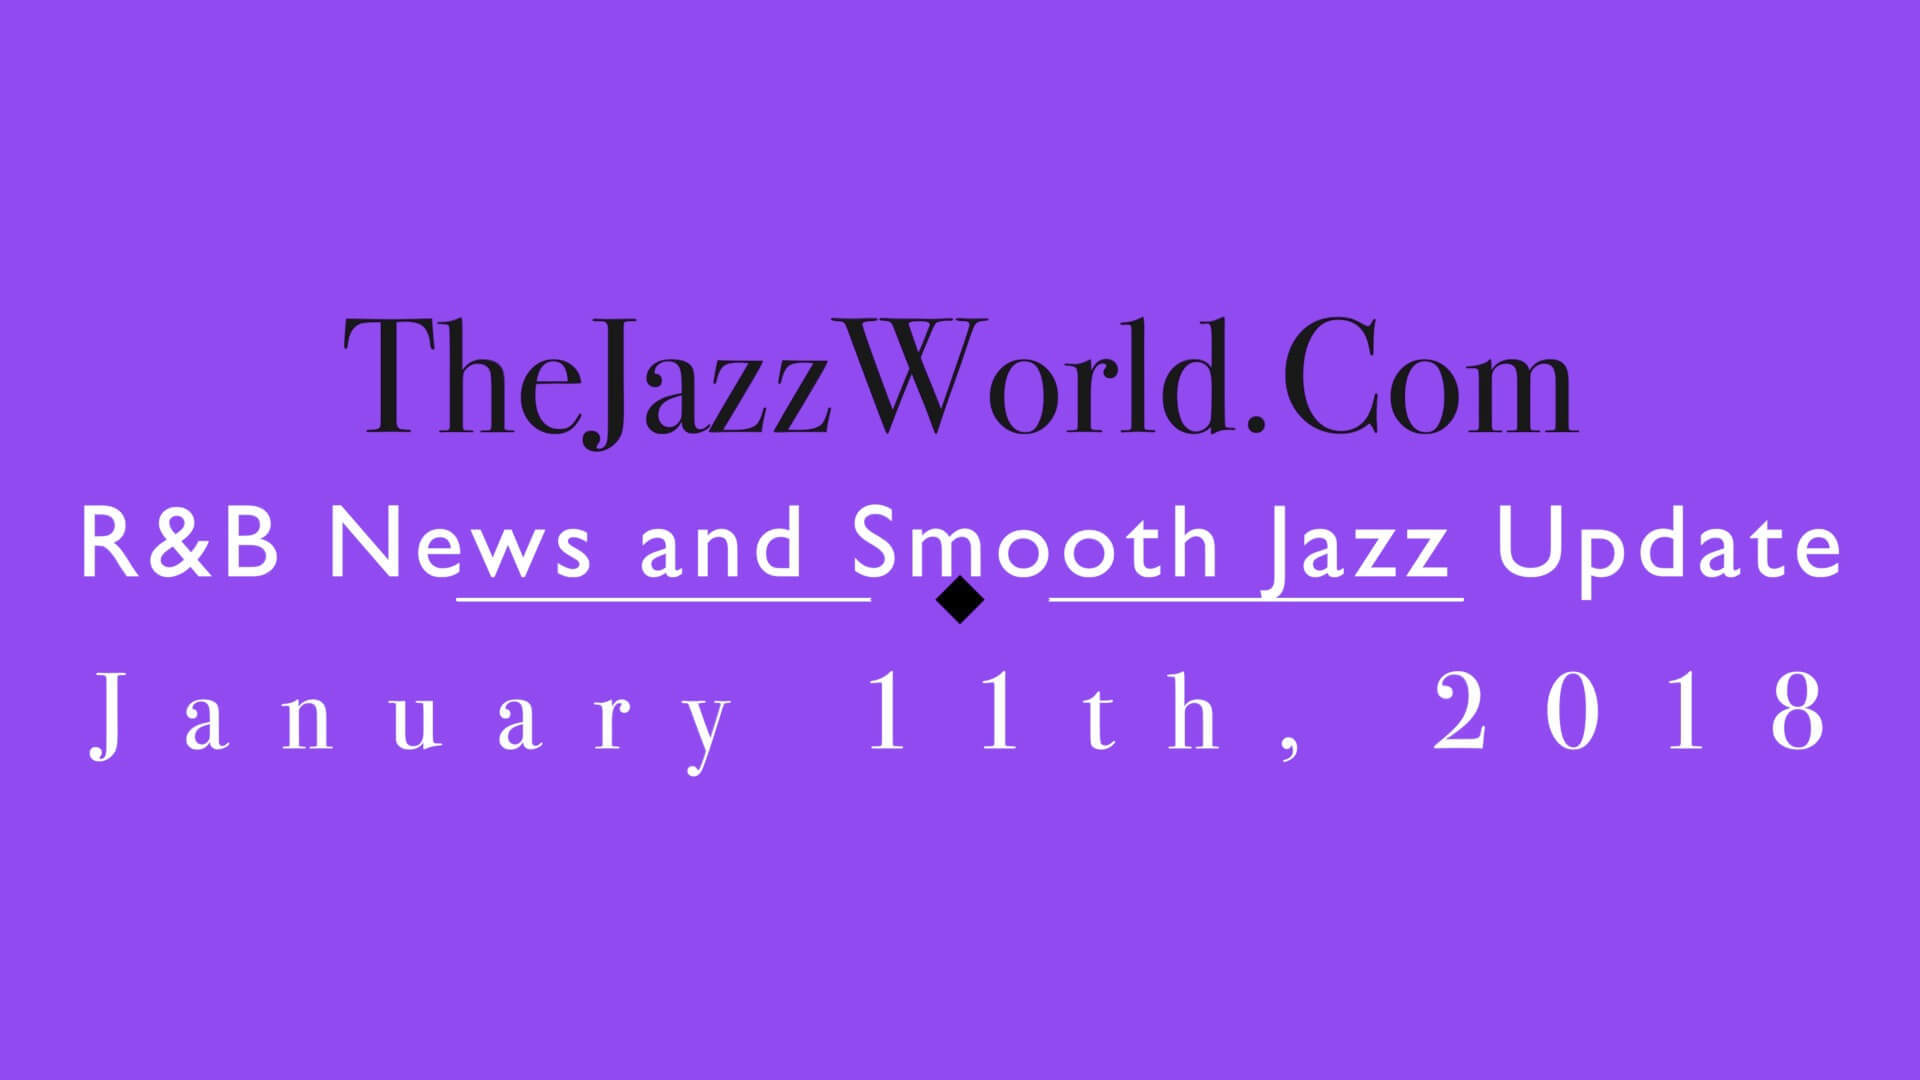 The Jazz World Show 1:11:18